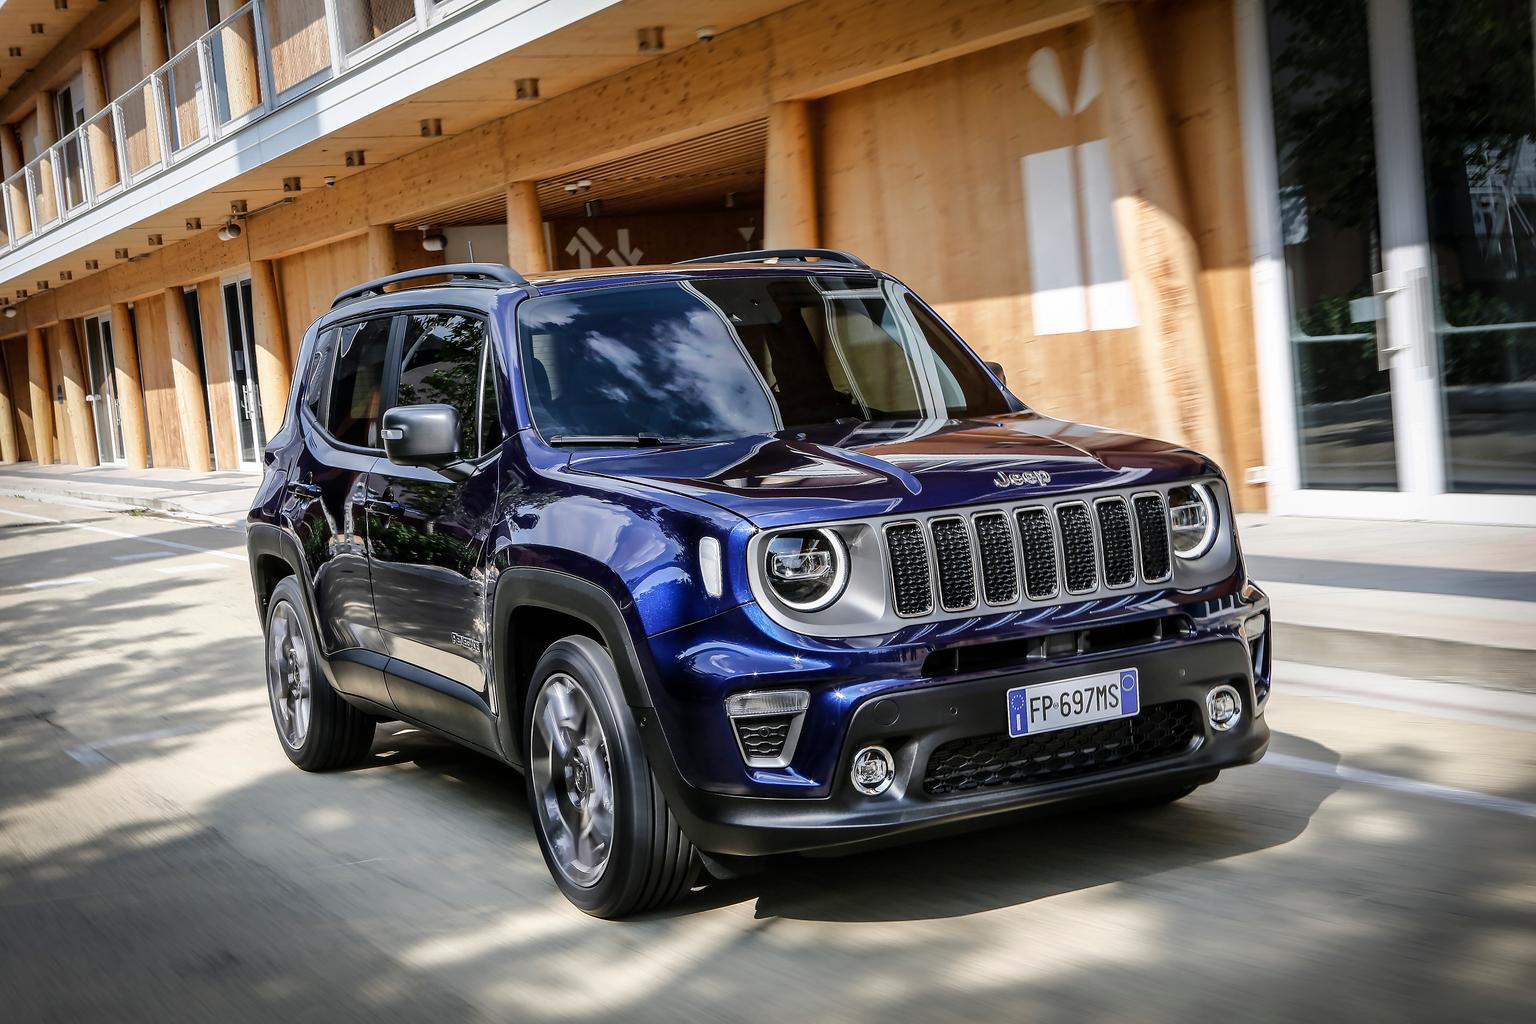 2018 Jeep Renegade review - price, specs and release date